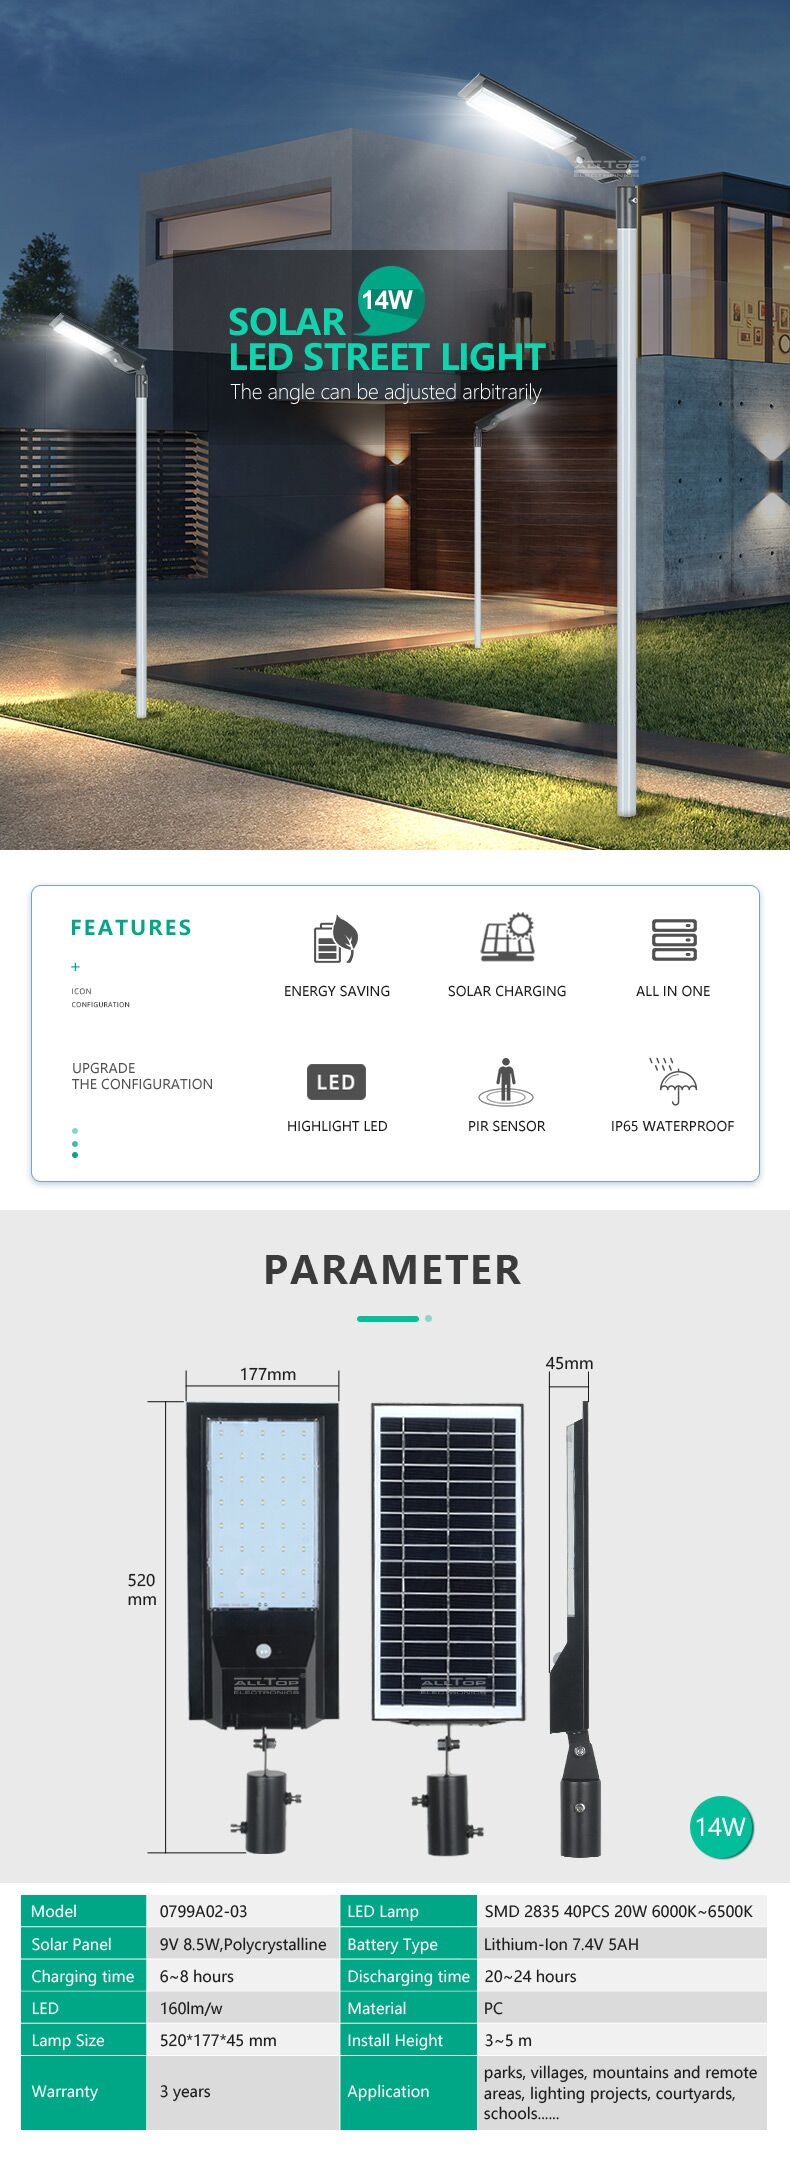 ALLTOP  IP65 Waterproof solar charging Adjustable Angle Energy Saving 9w 14w All In One Solar Led Street Light